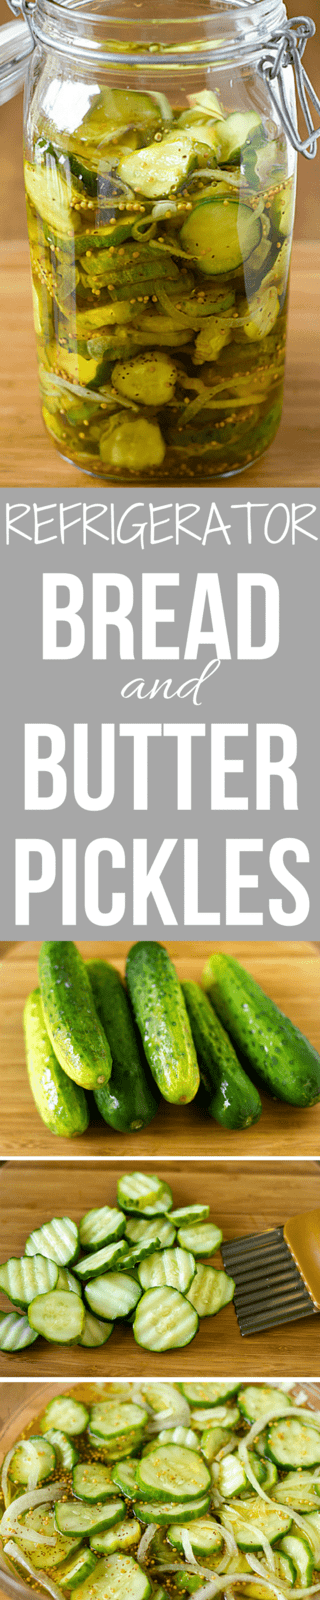 A wonderful, simple recipe for homemade refrigerator Bread and Butter Pickles. No canning equipment required! Just prepare and pop in the fridge!